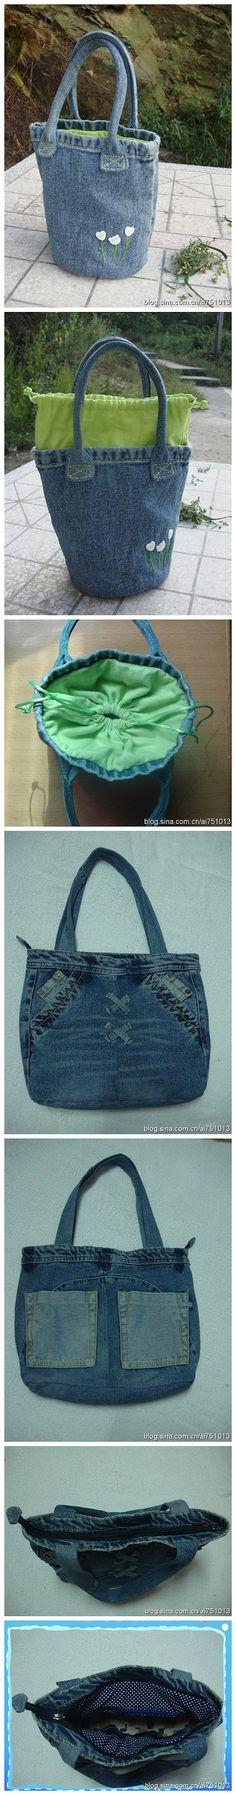 Denim bags  --  made from recycled jeans. This one is simply made from a pant leg and the interior holds items secured because of the pull string closure!